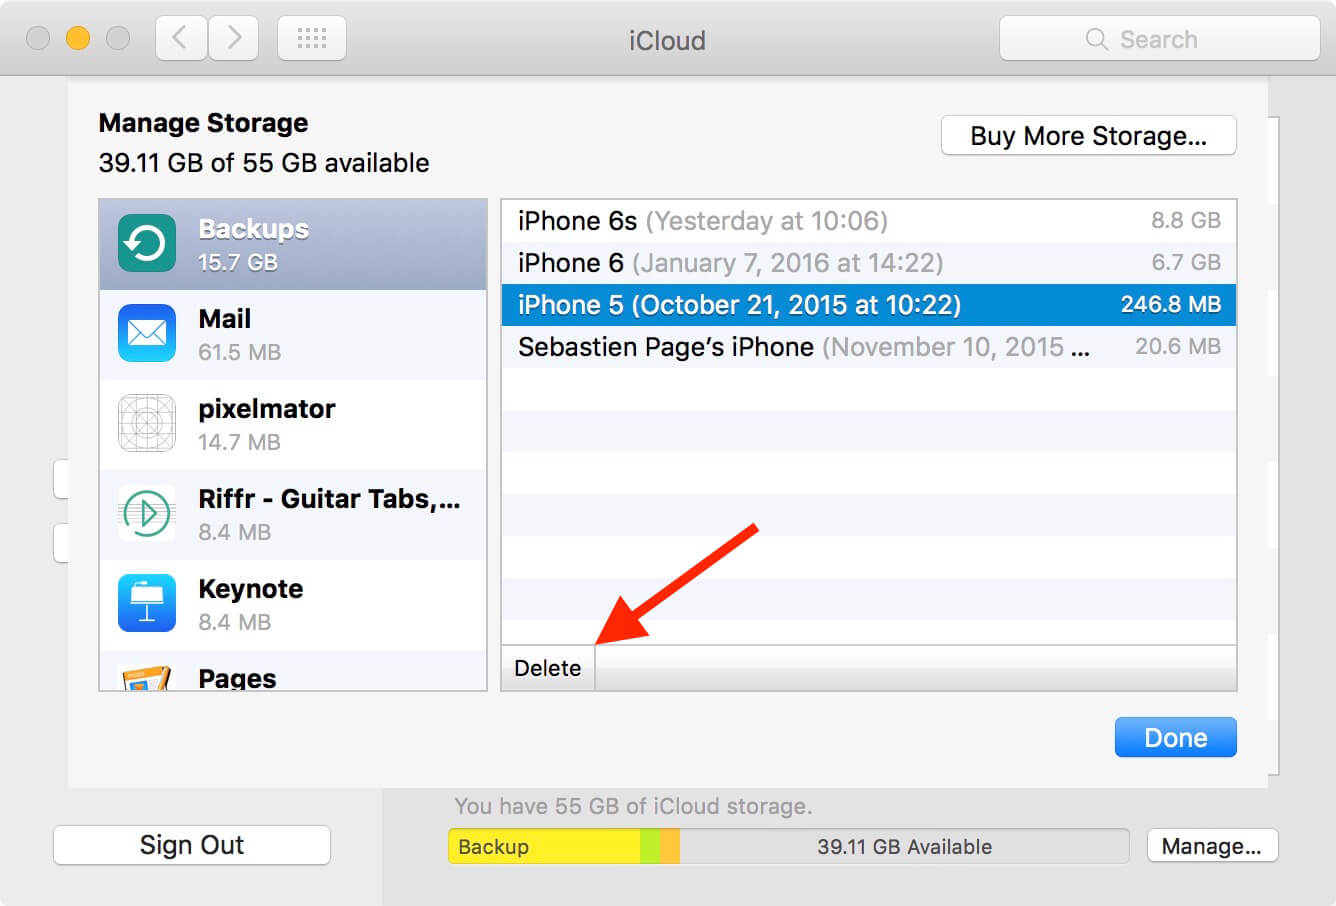 How to Manage iCloud Storage with Effective ways in 2018